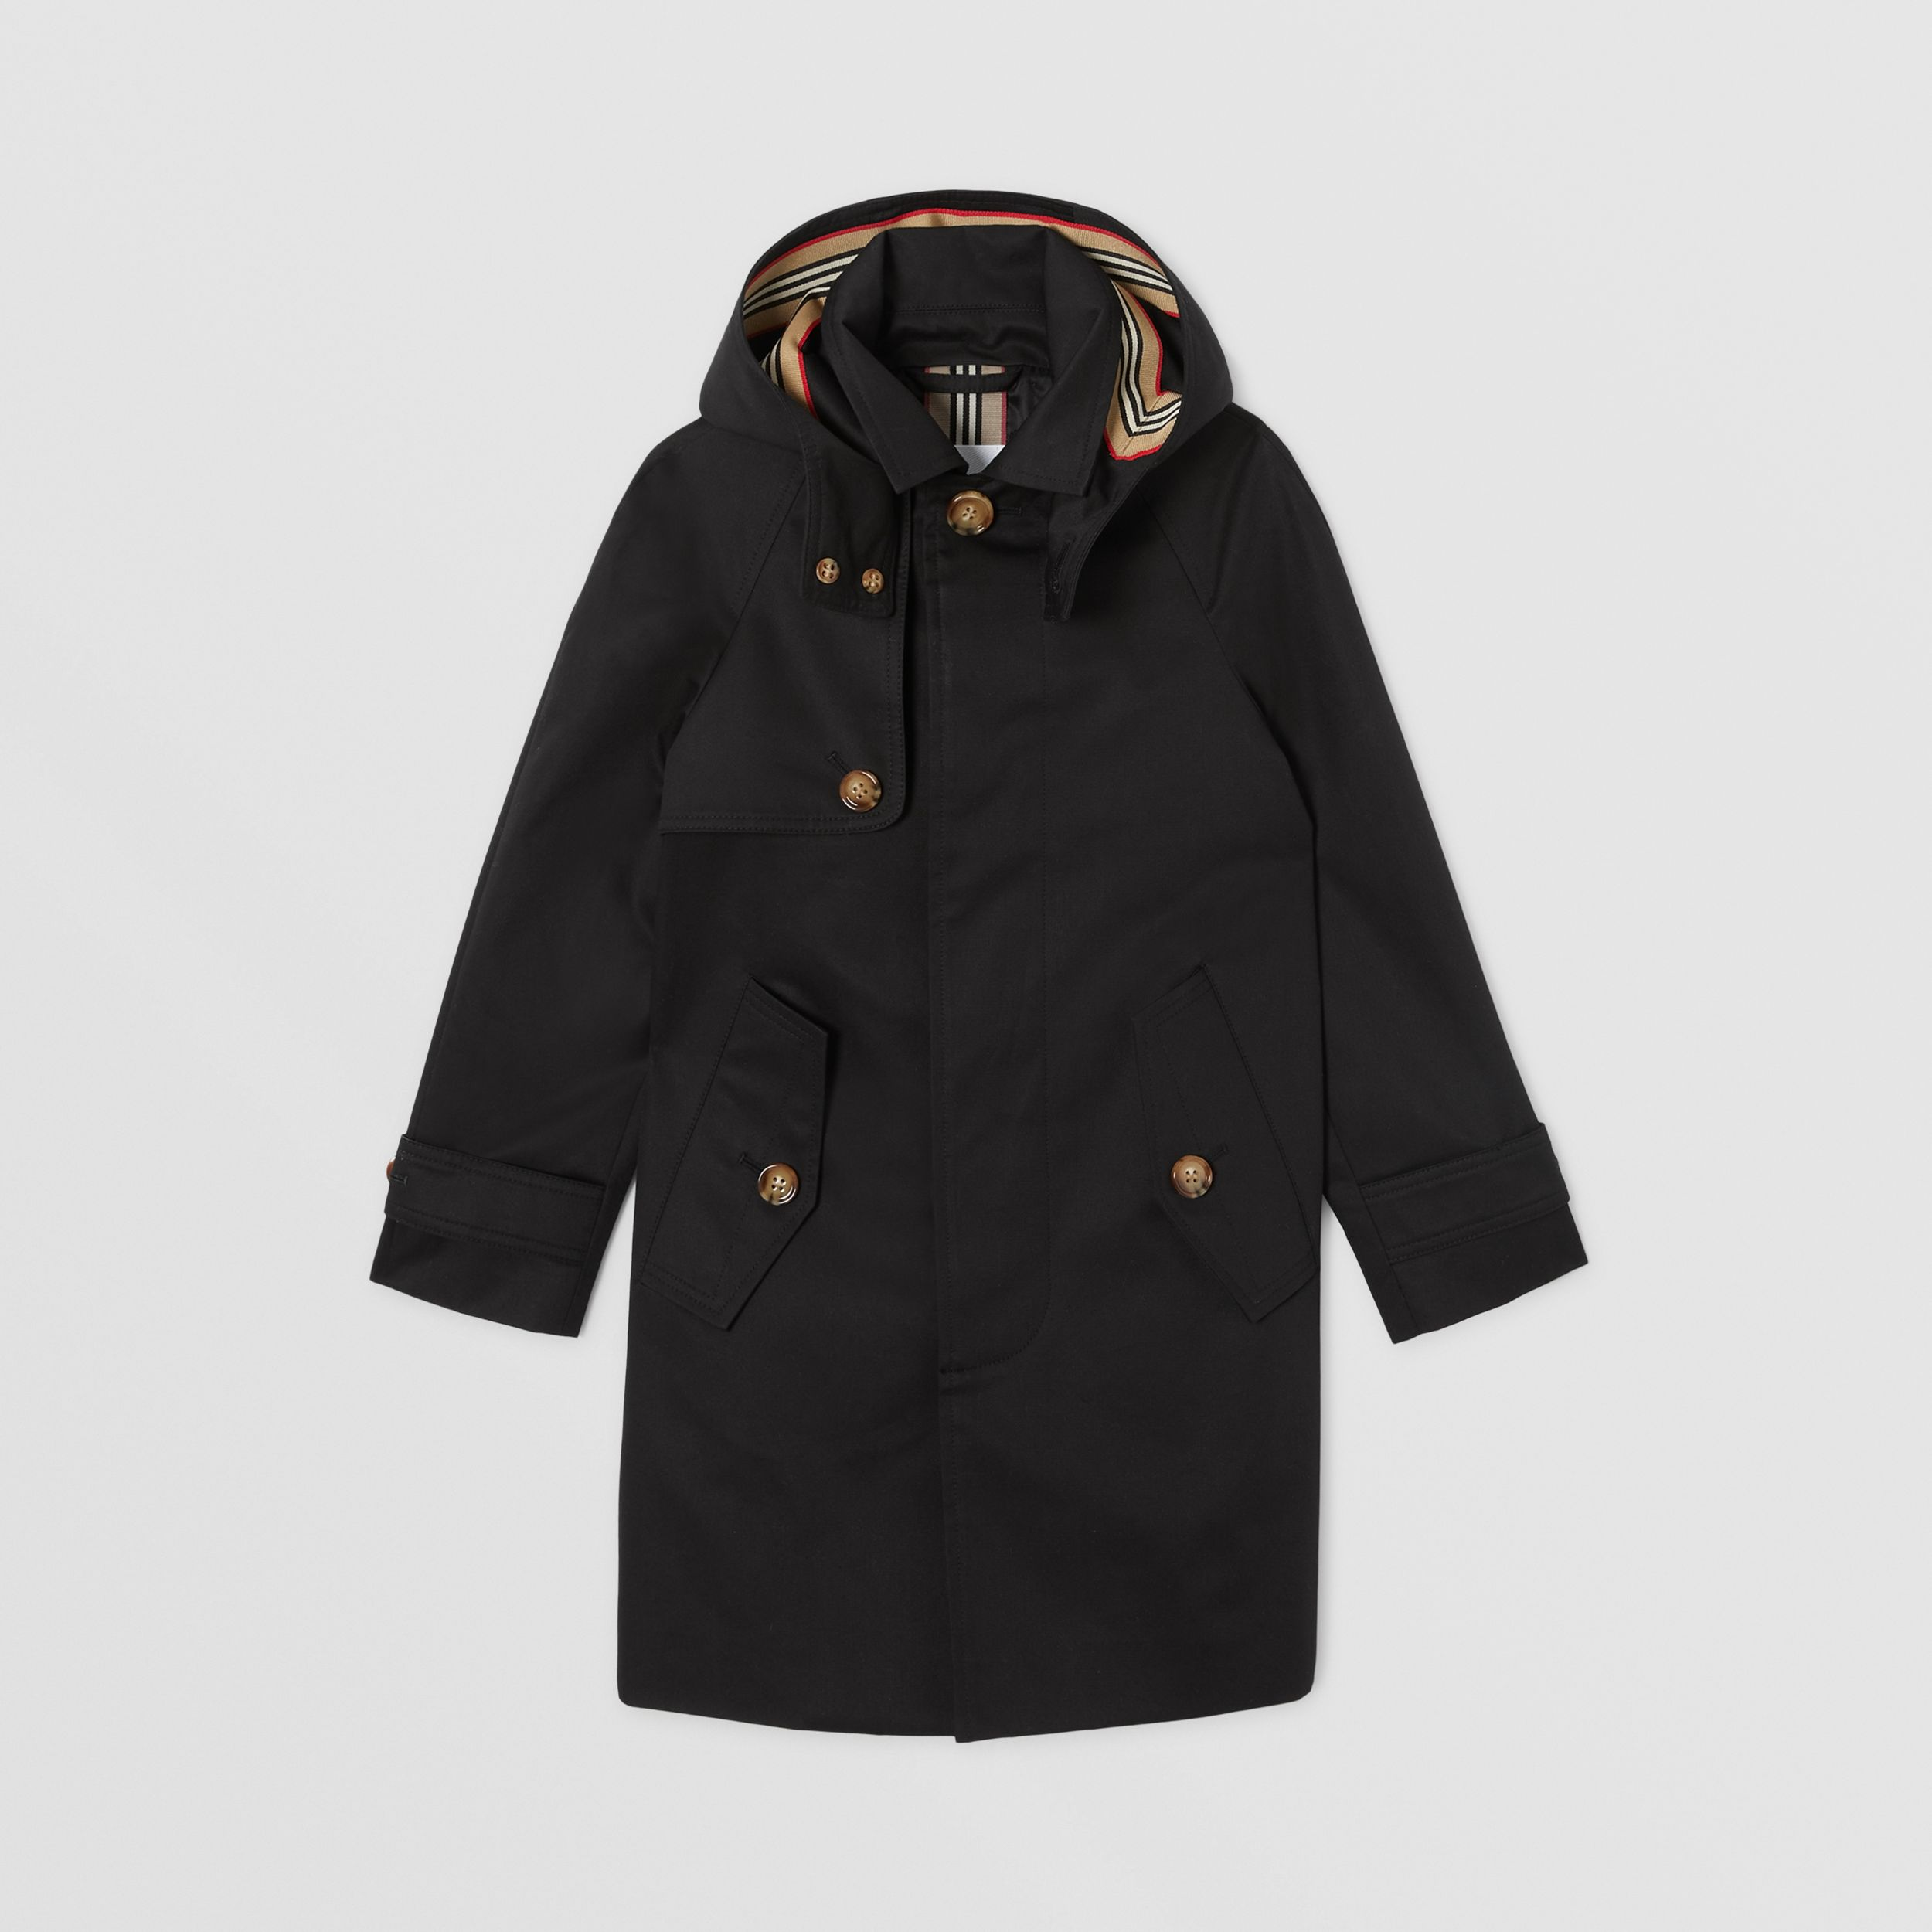 Detachable Hood Icon Stripe Trim Cotton Car Coat in Black | Burberry United Kingdom - 1